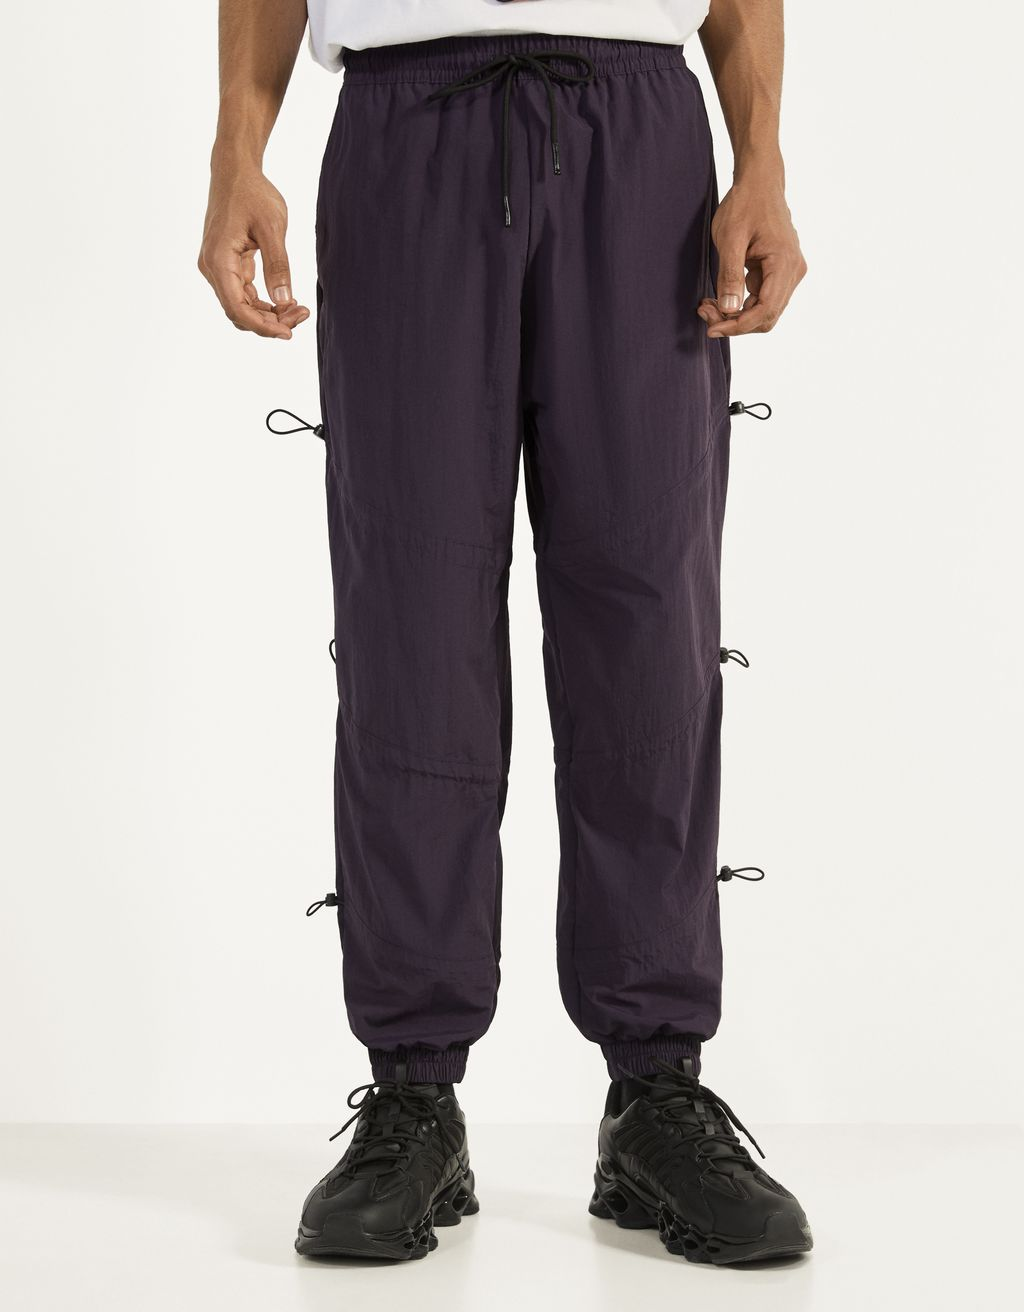 Joggers with elastic details